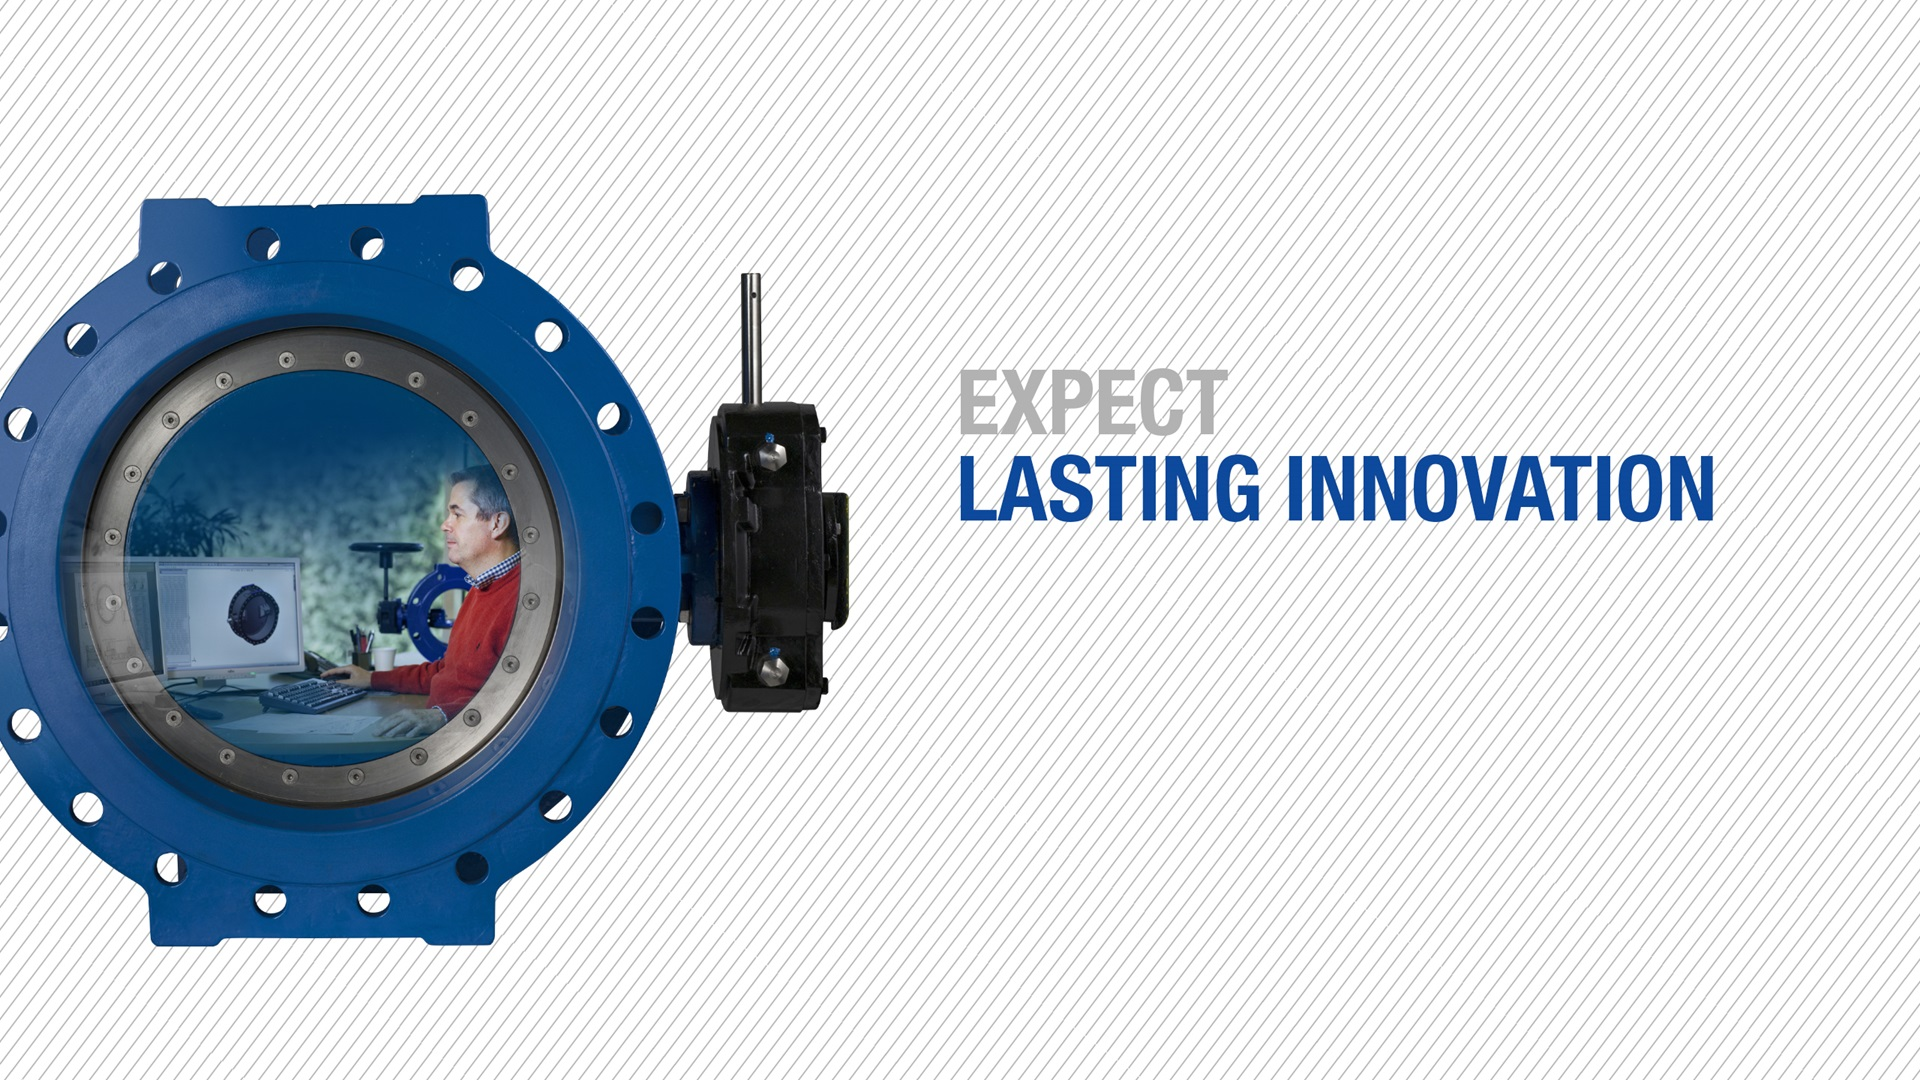 Expect lasting innovations from AVK